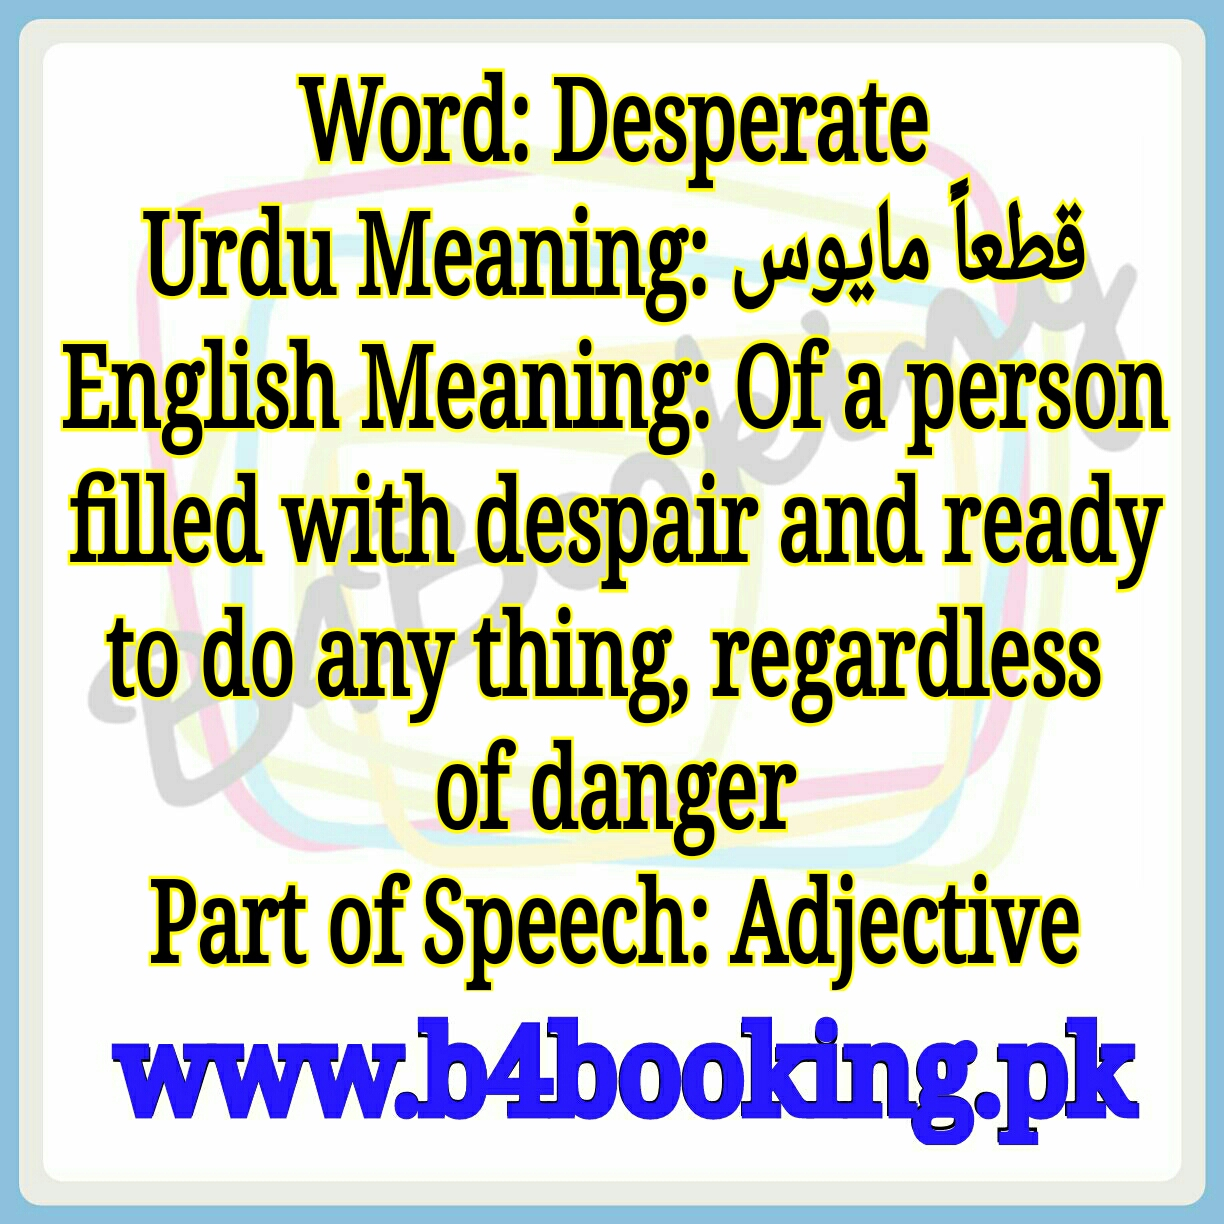 Desperate Meaning In Urdu And English Desperate Pronunciation Desperate cancer patients who are vulnerable to the claims of unscrupulous quacks. b4booking pk